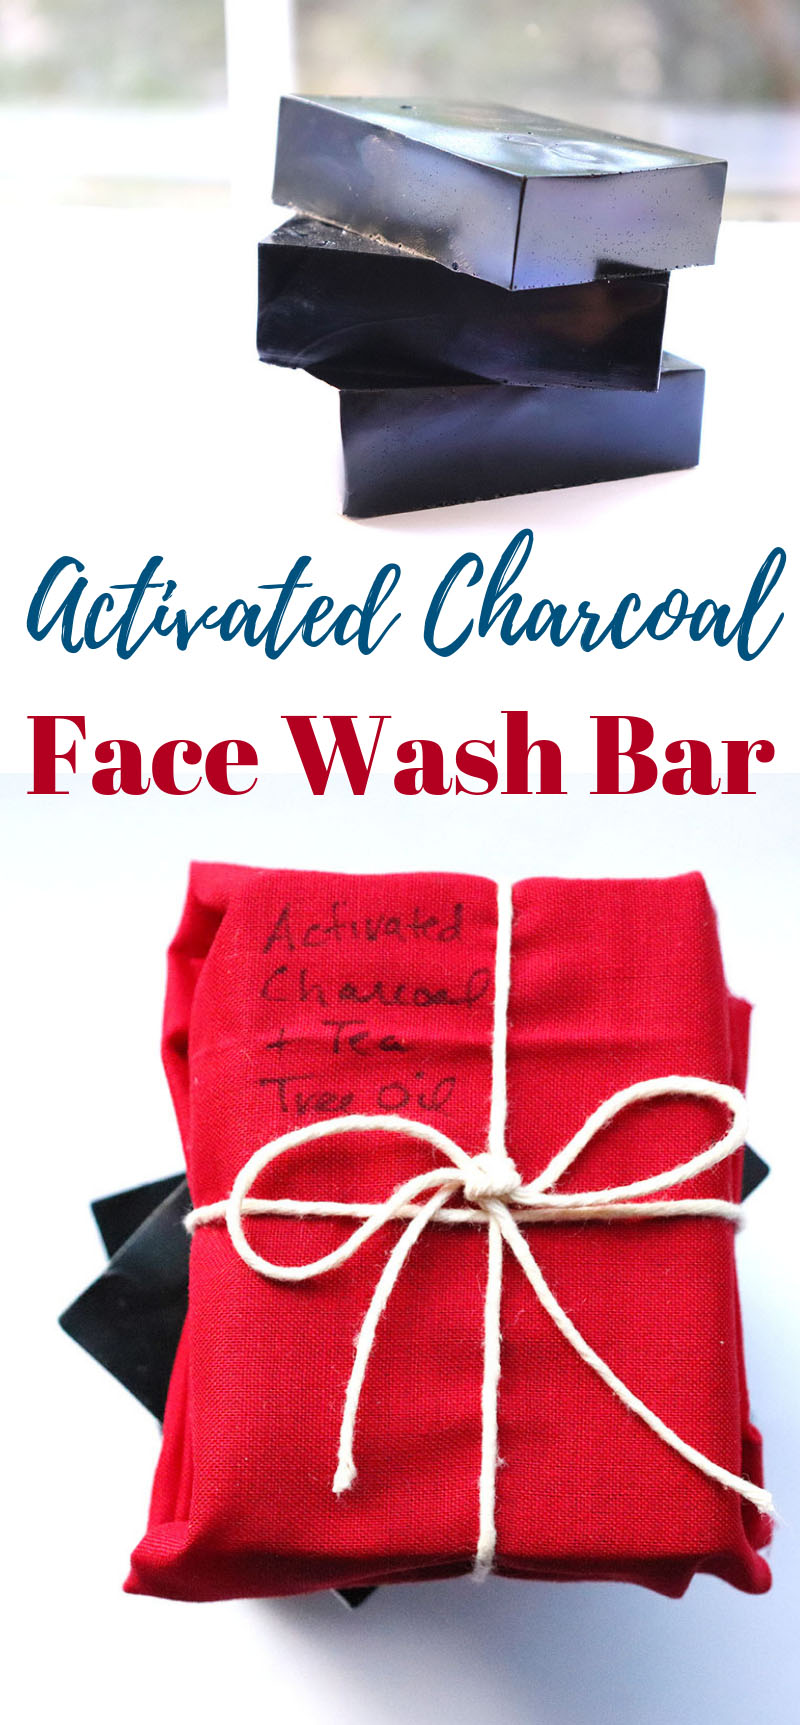 How to make Activated Charcoal Face Wash Bar for cleaner, hydrated, skin